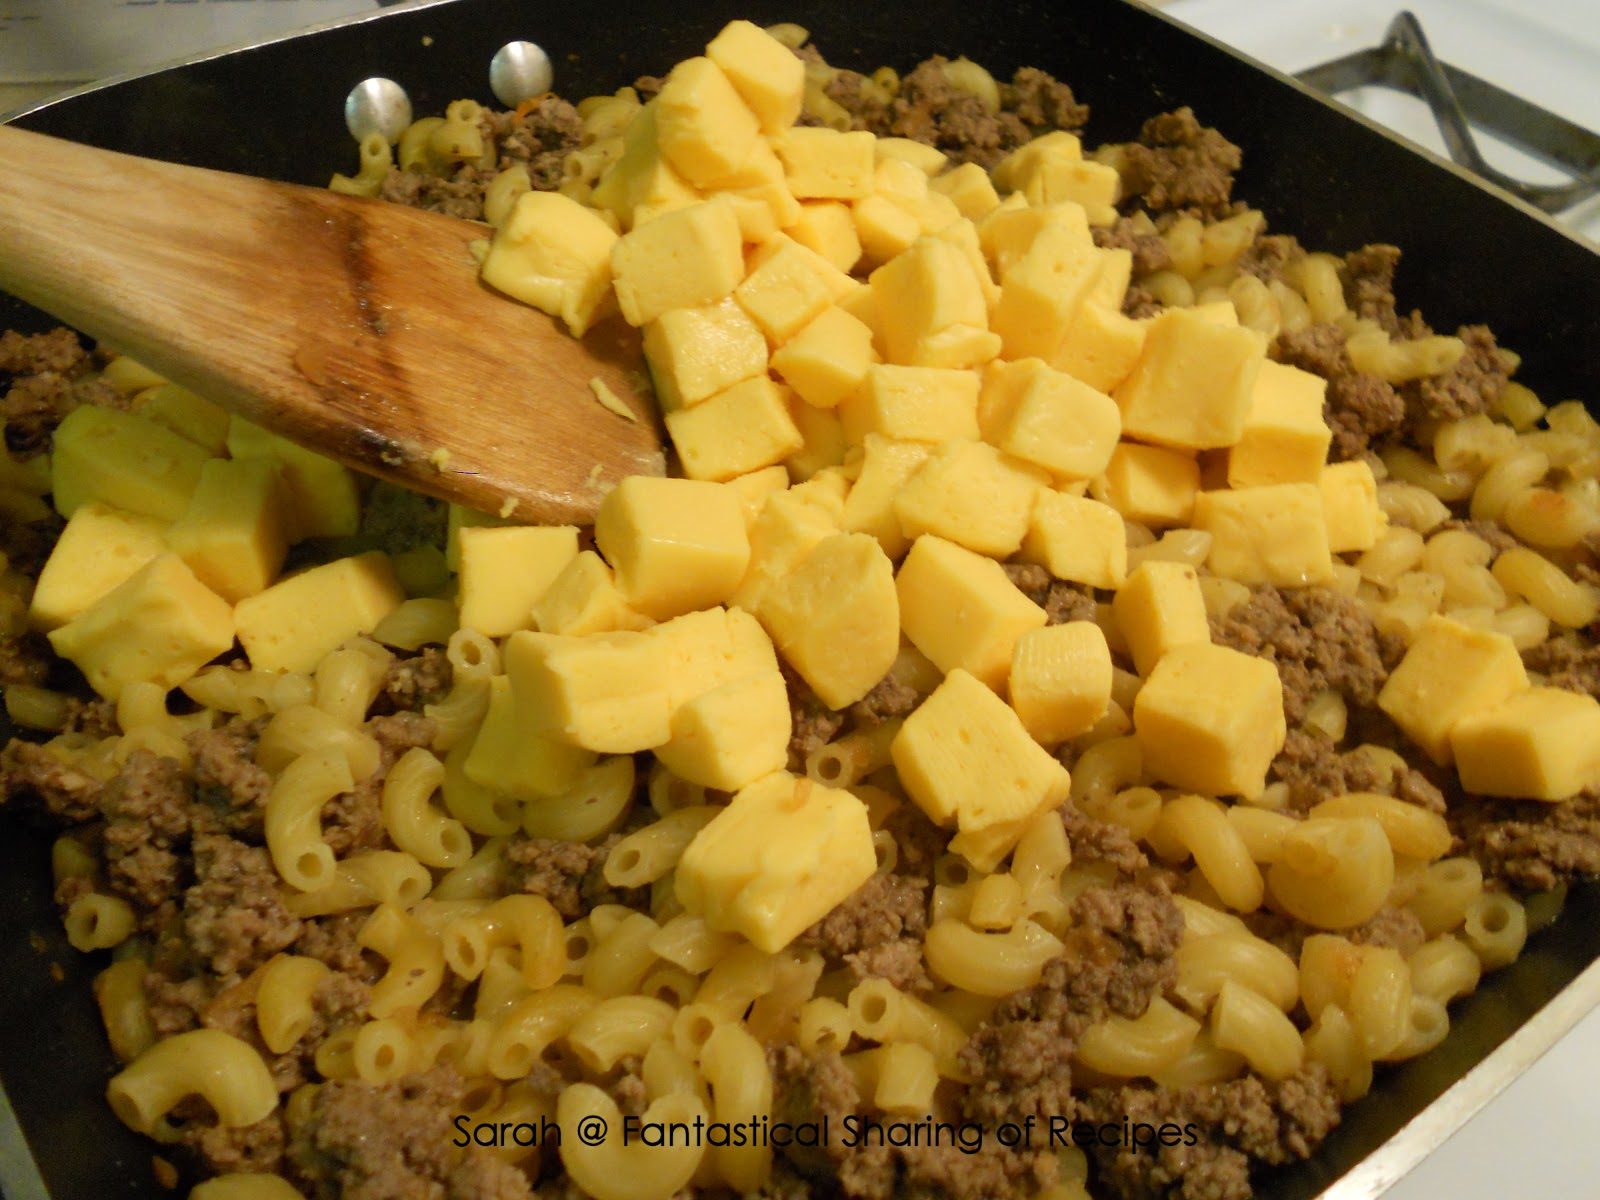 ... gluten-free baked mac and cheese recipe - kicked up by Karina. clinic